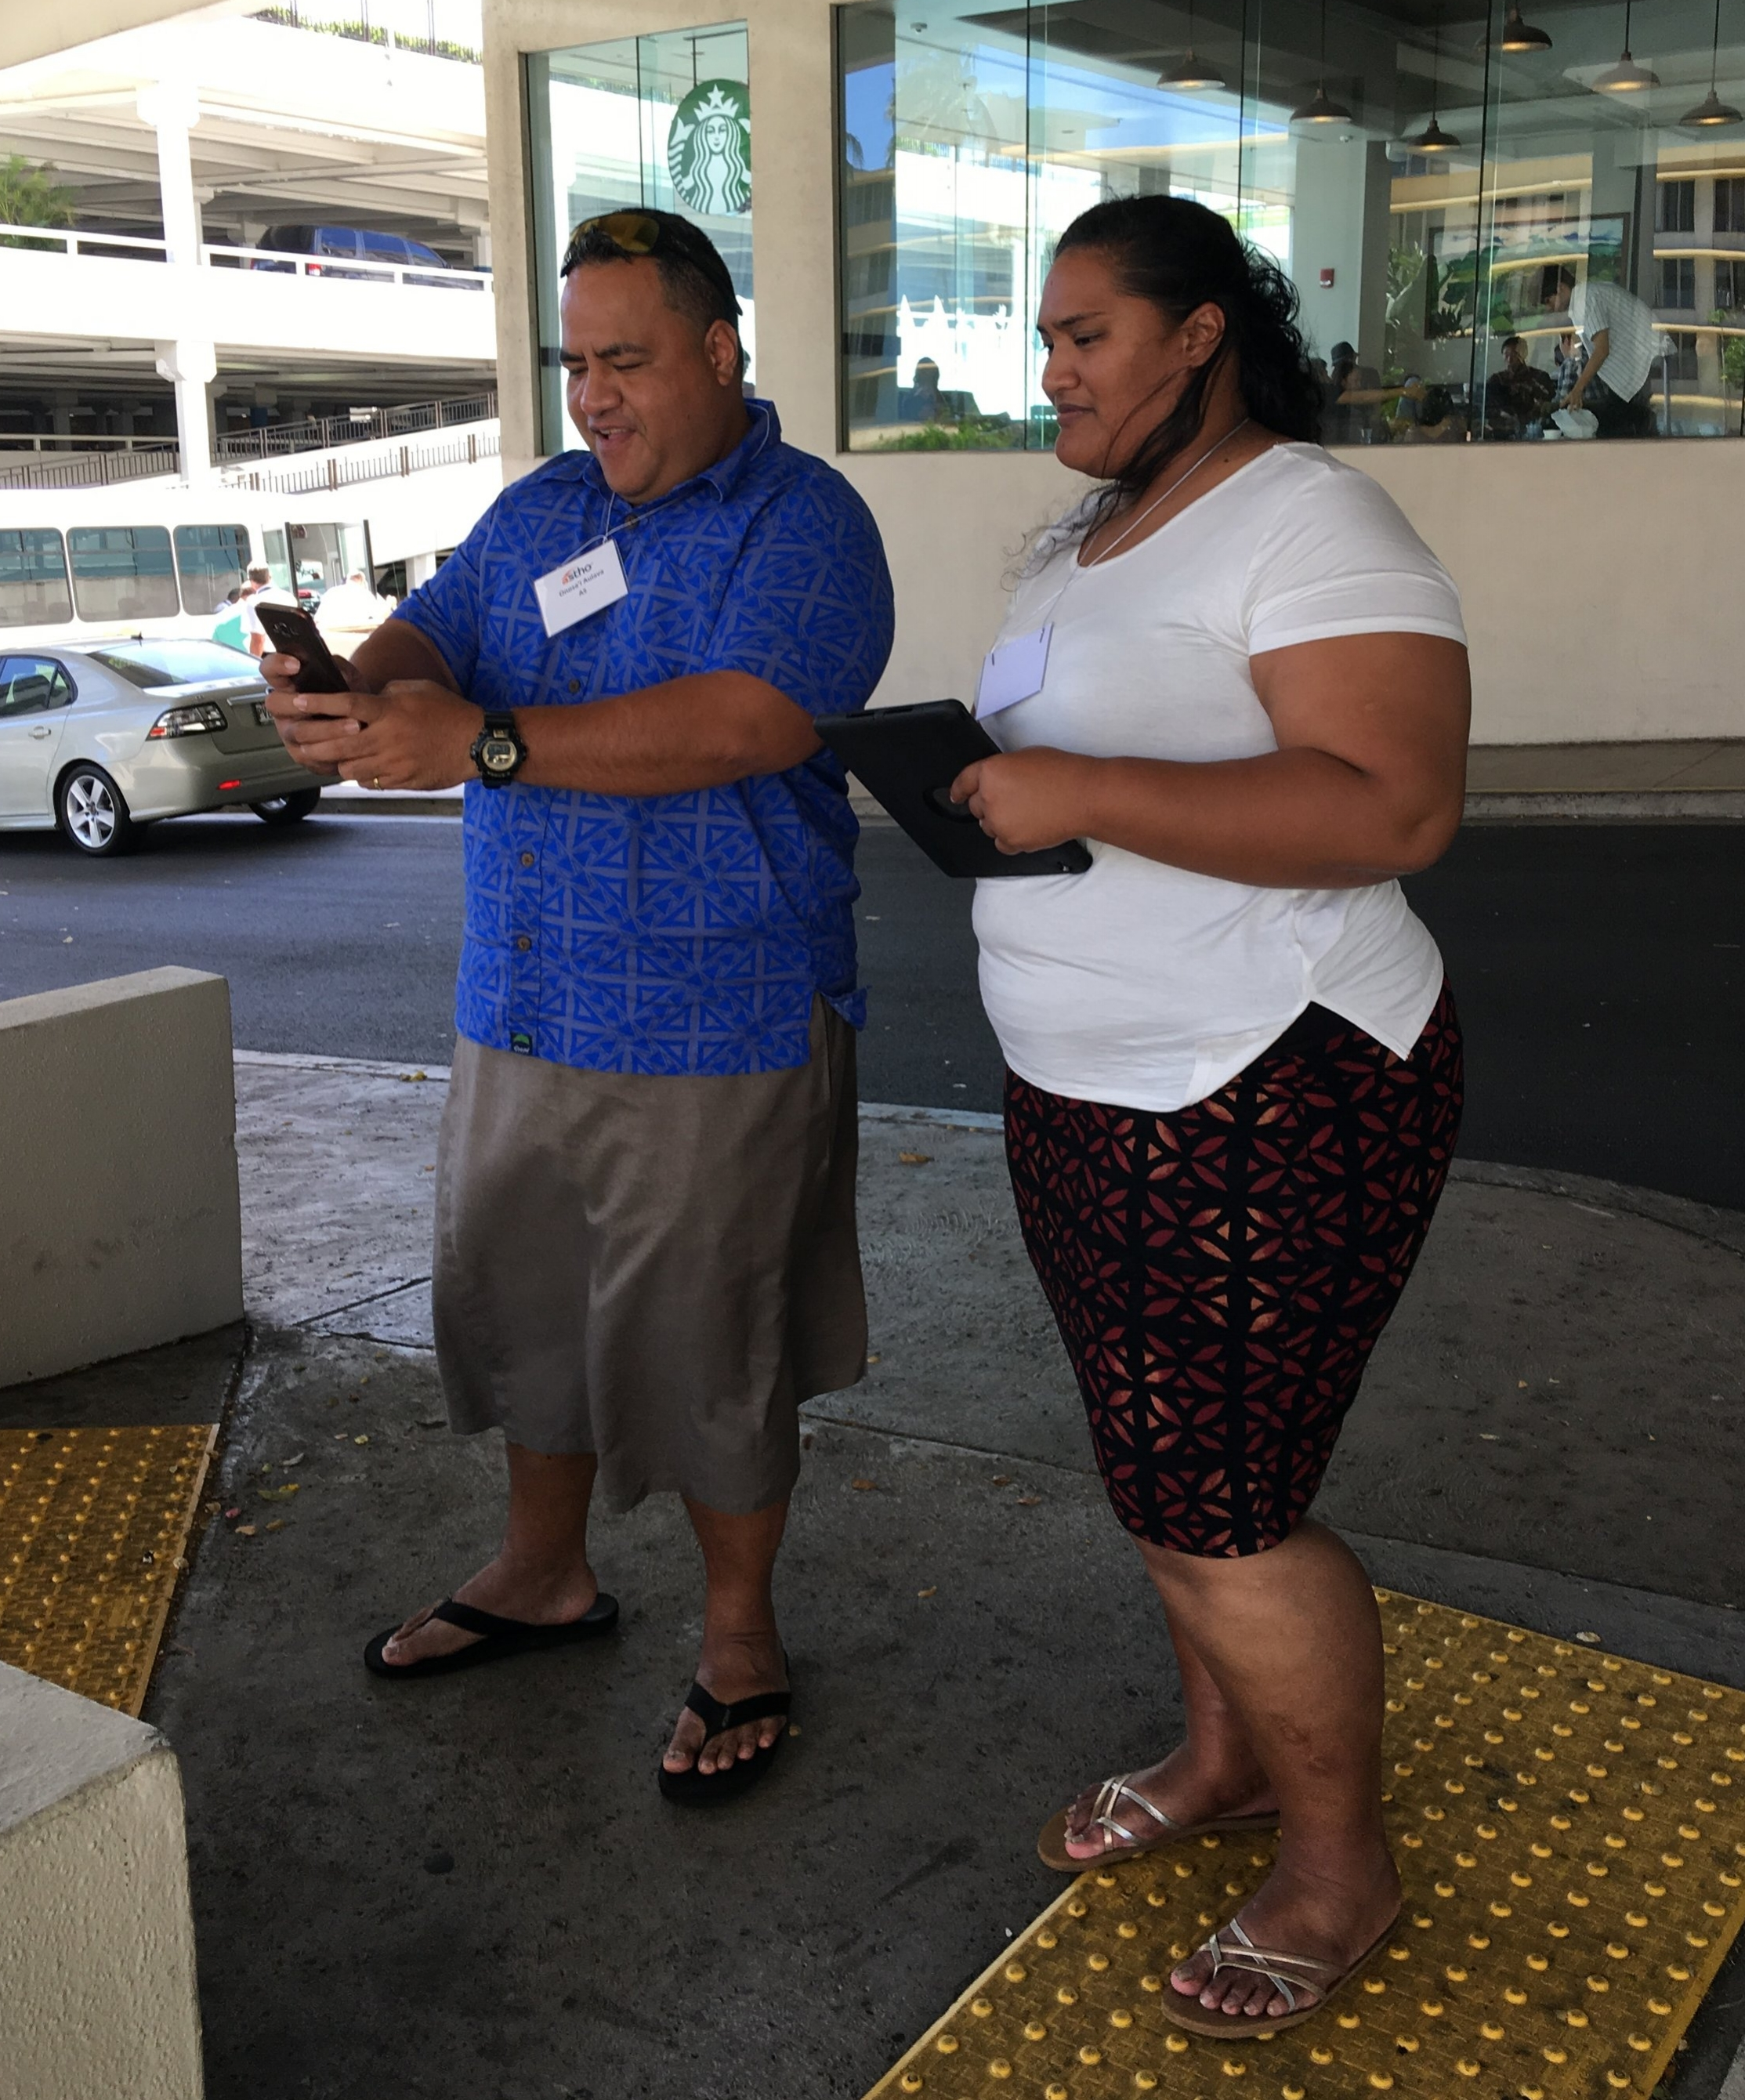 Onasai'i Aulava & Ruta Ropeti from American Samoa learning to use Fulcrum